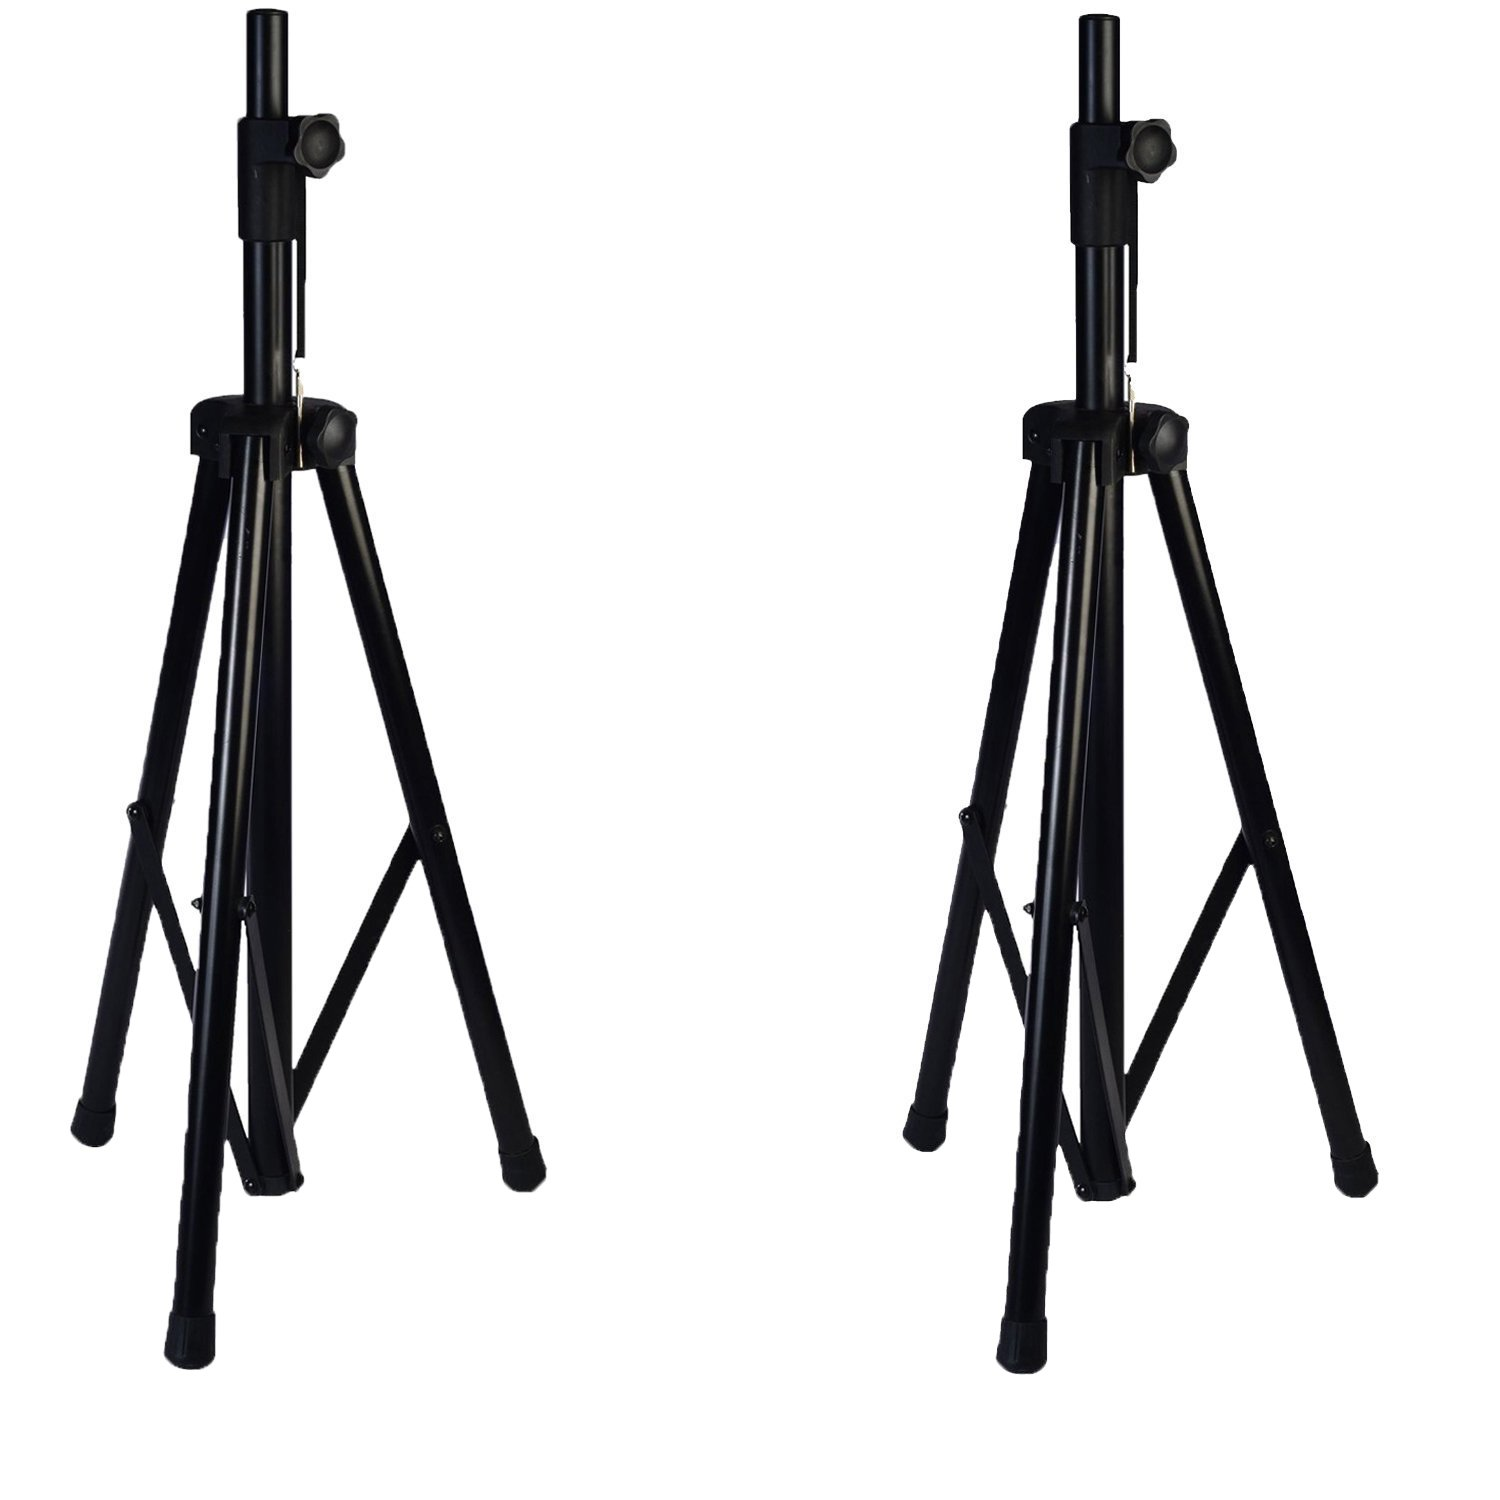 Pair of LyxPro SKS-1 Tripod Speaker Stand, Up to 6 Feet Adjustable Height, Non Slip Feet, Locking Knob and Pin, For Speakers w/ 1-3/8 and 1-1/2 Sockets - Black by LyxPro